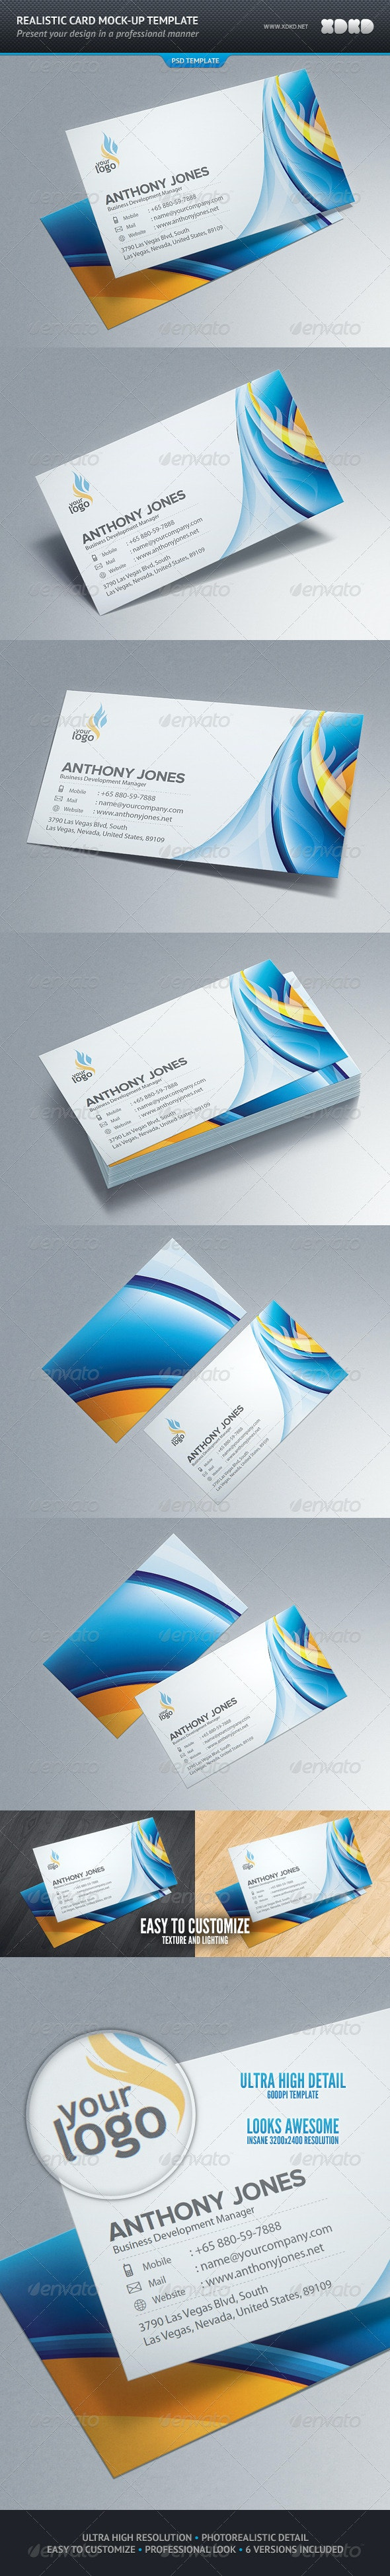 Photorealistic Business Card Mockup Template - Business Cards Print